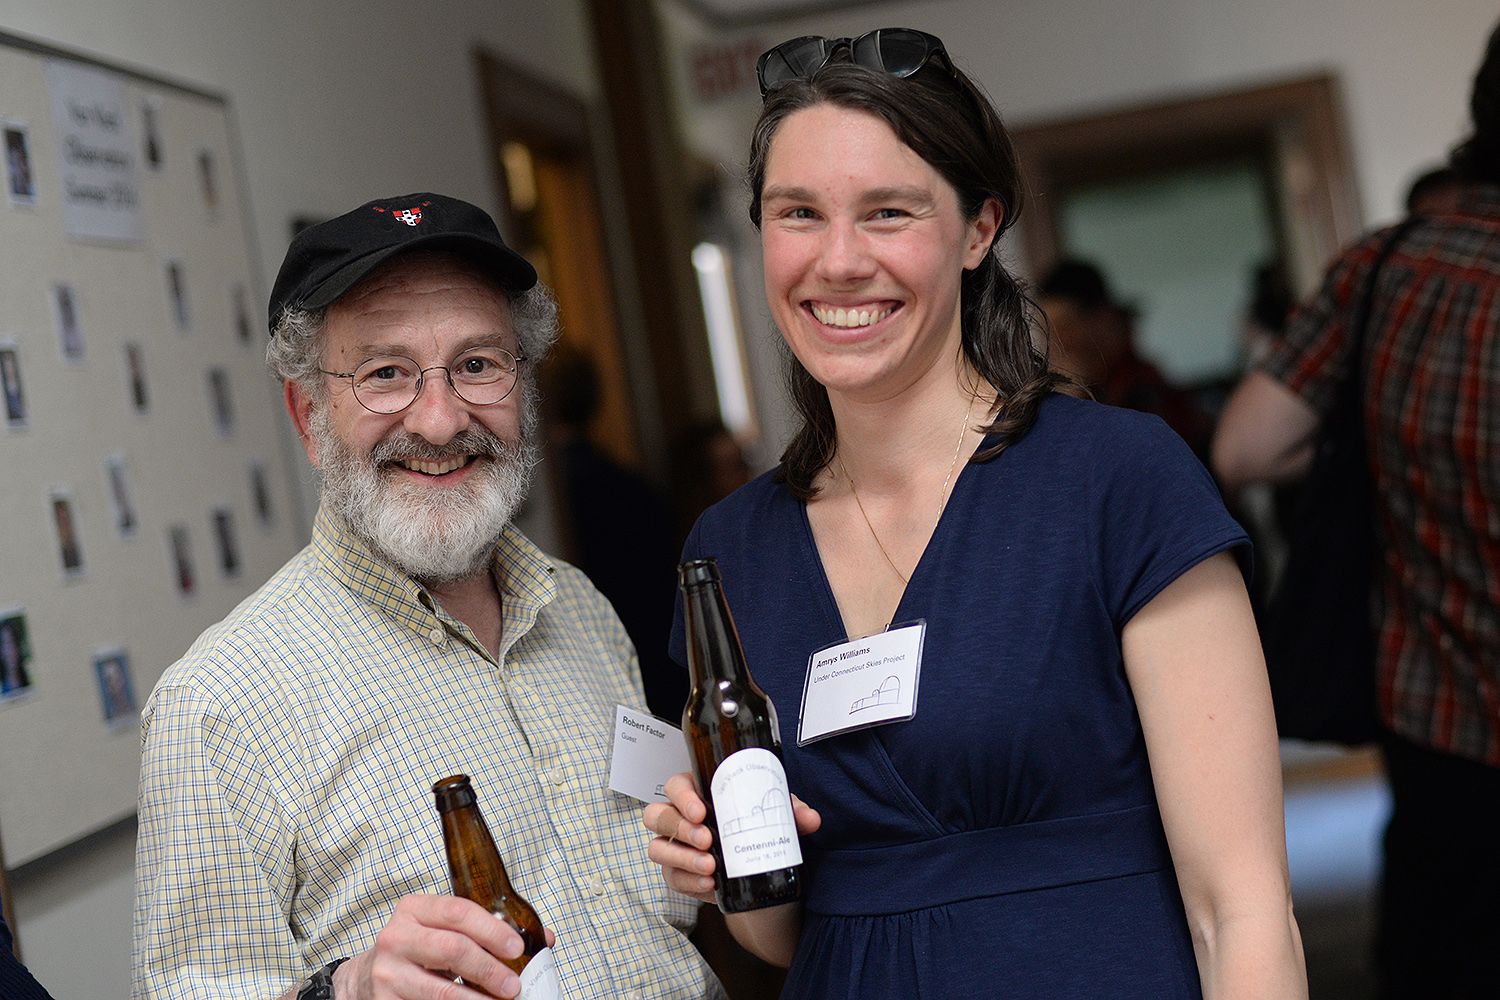 Guest Robert Factor and Amrys Williams, visiting assistant professor of history, enjoyed the Centenni-Ale.